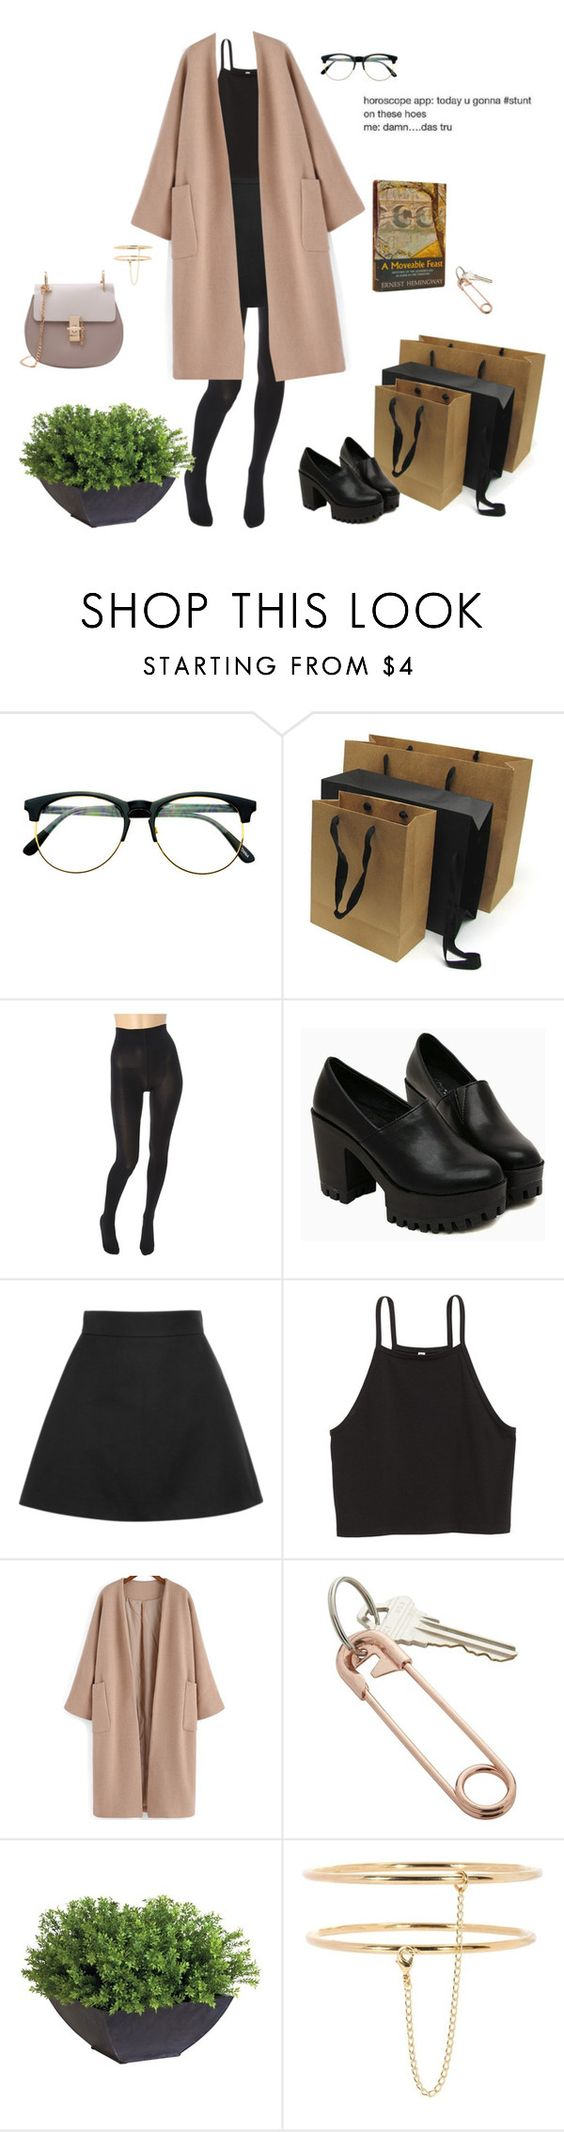 """Casual elegance"" by djulia-tarasova ❤ liked on Polyvore featuring Retrò, Hemingway, Wolford, Victoria Beckham, CB2, Ethan Allen and STELLA McCARTNEY"